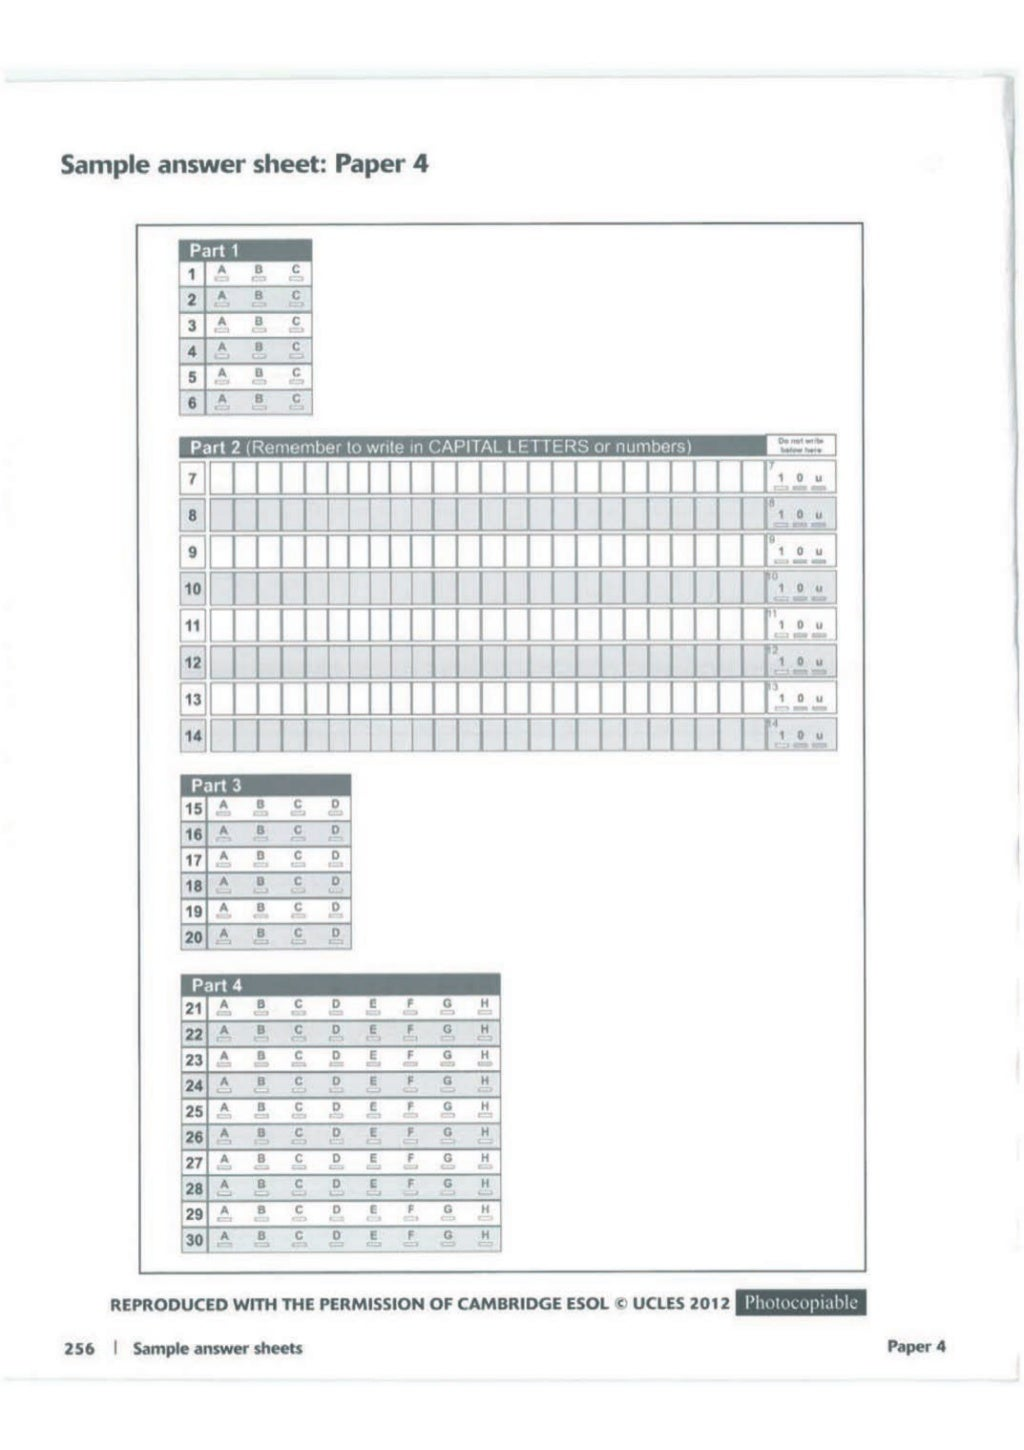 Advanced trainer 6 practice tests with answers book4joy (1) page 257